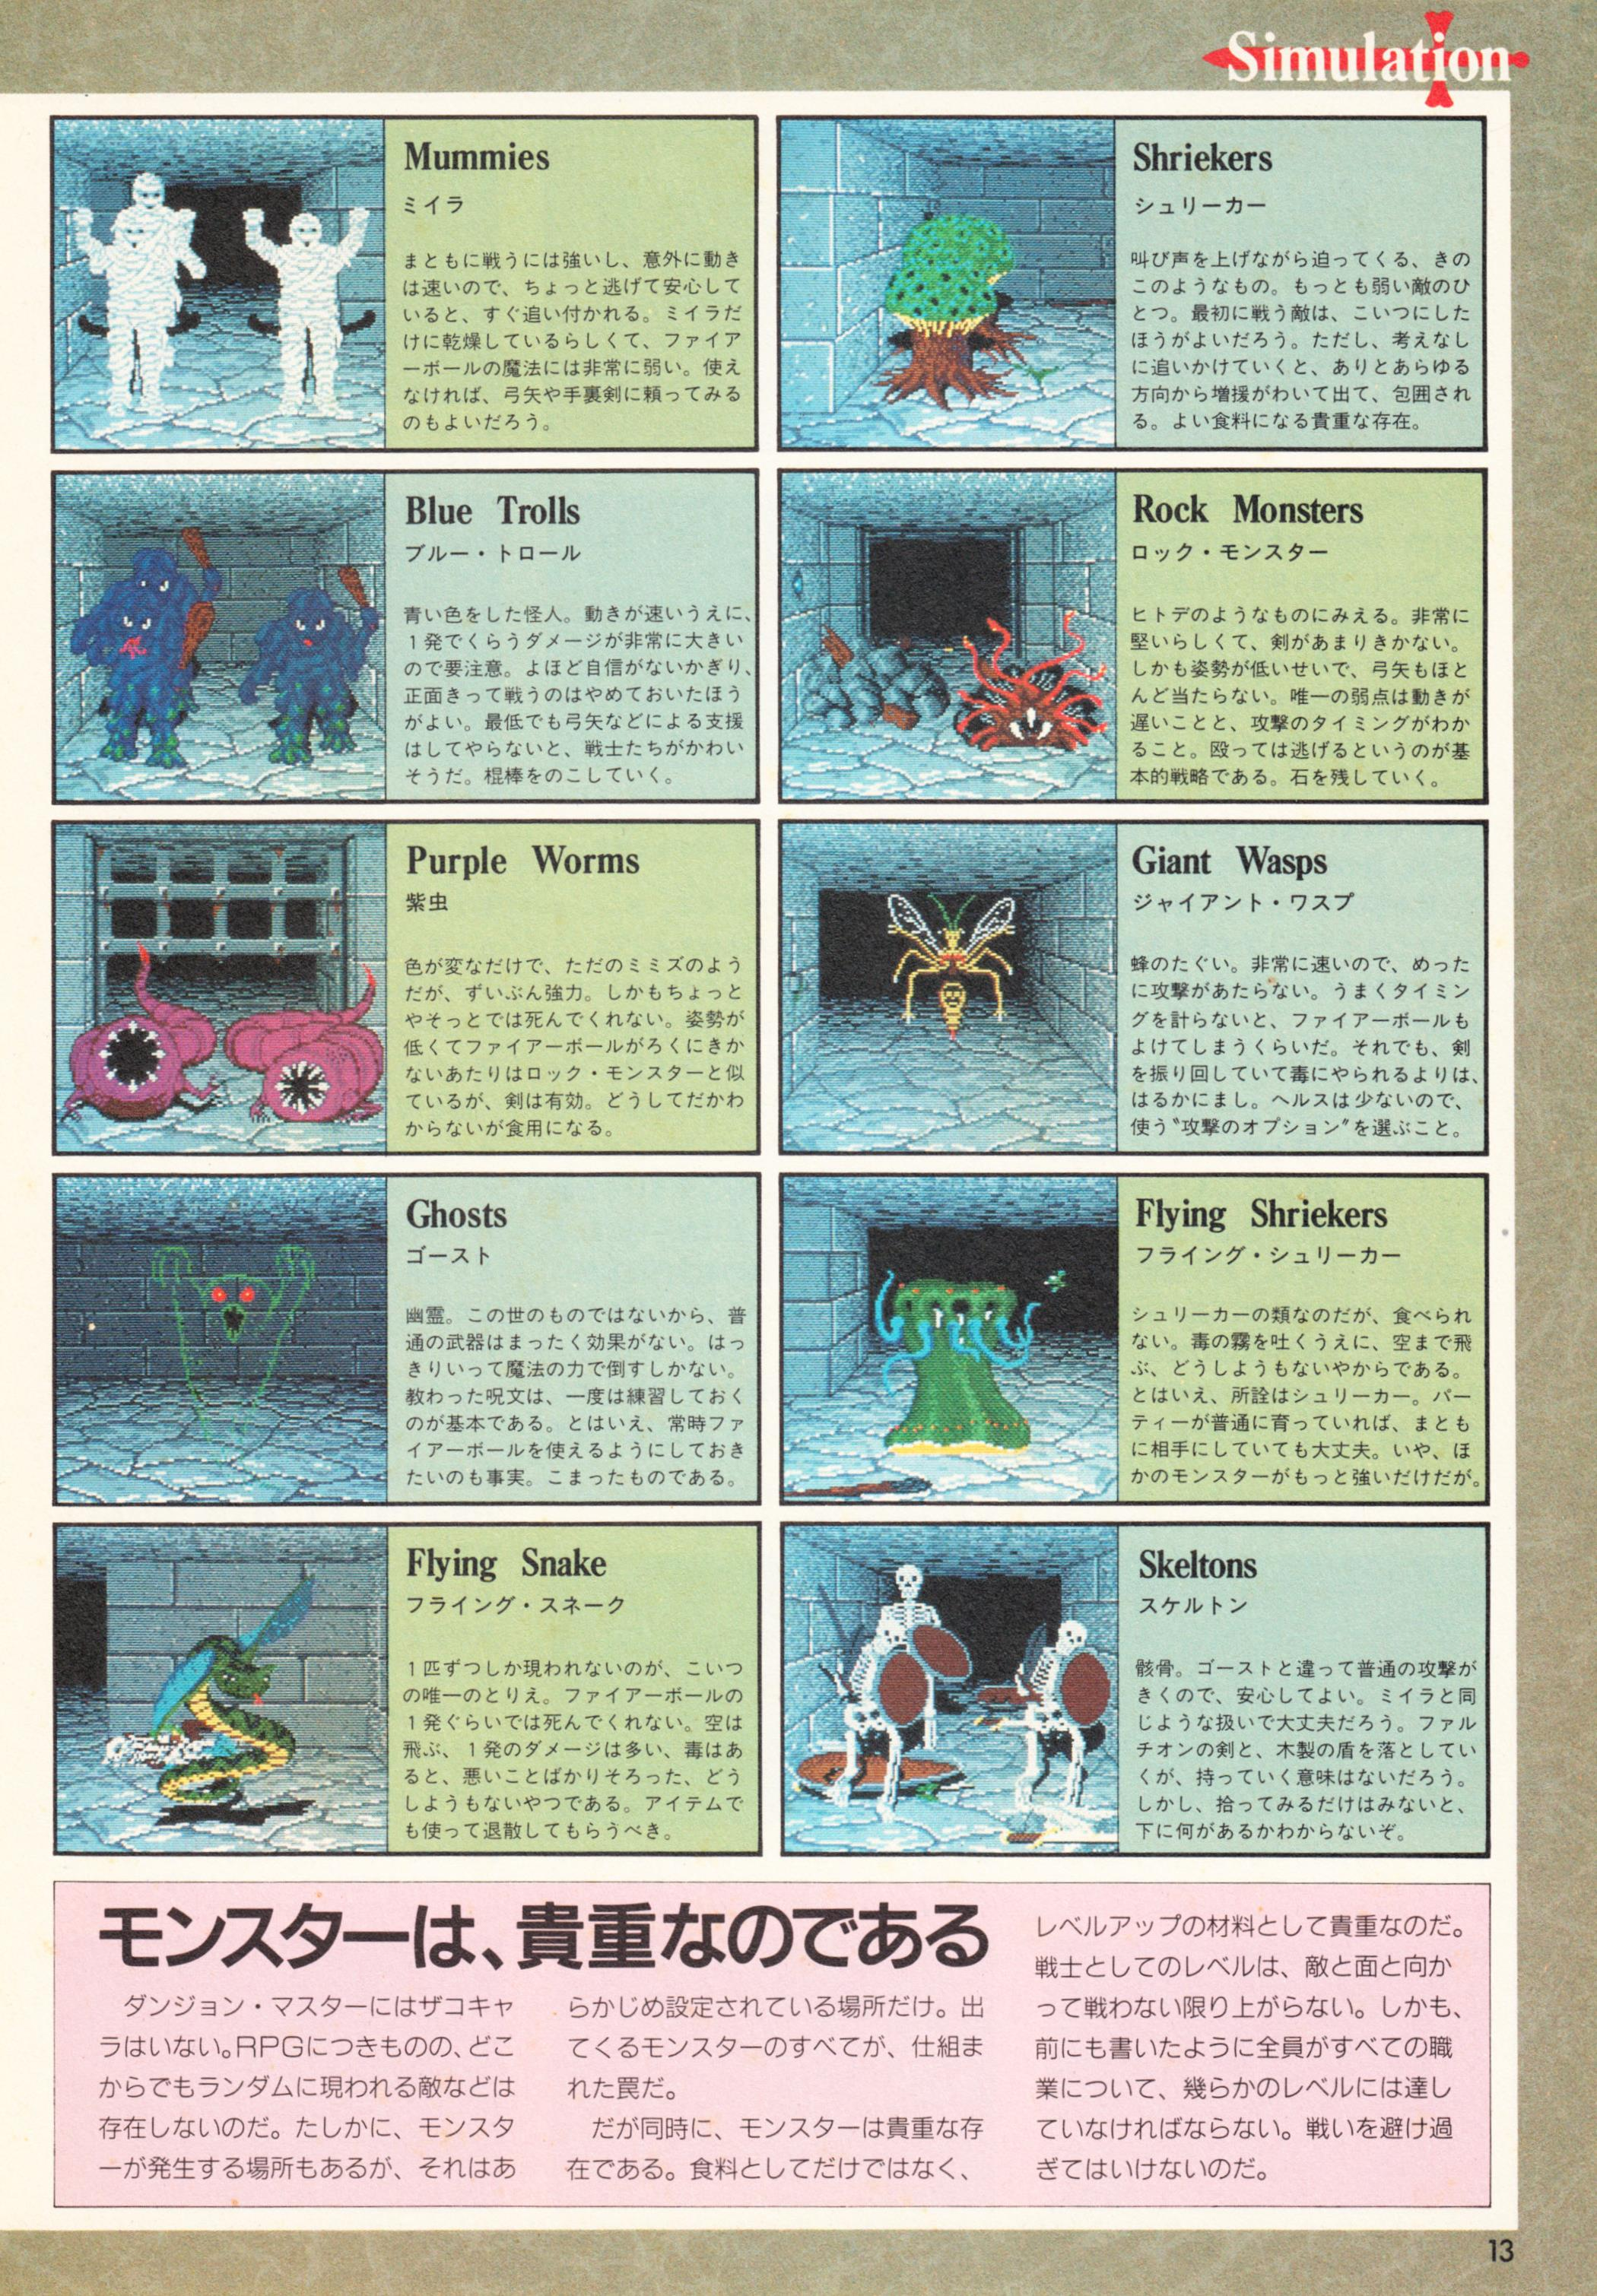 Special Supplement 2 - Dungeon Master Guide published in Japanese magazine 'Login', Vol 9 No 3 02 February 1990, Page 13